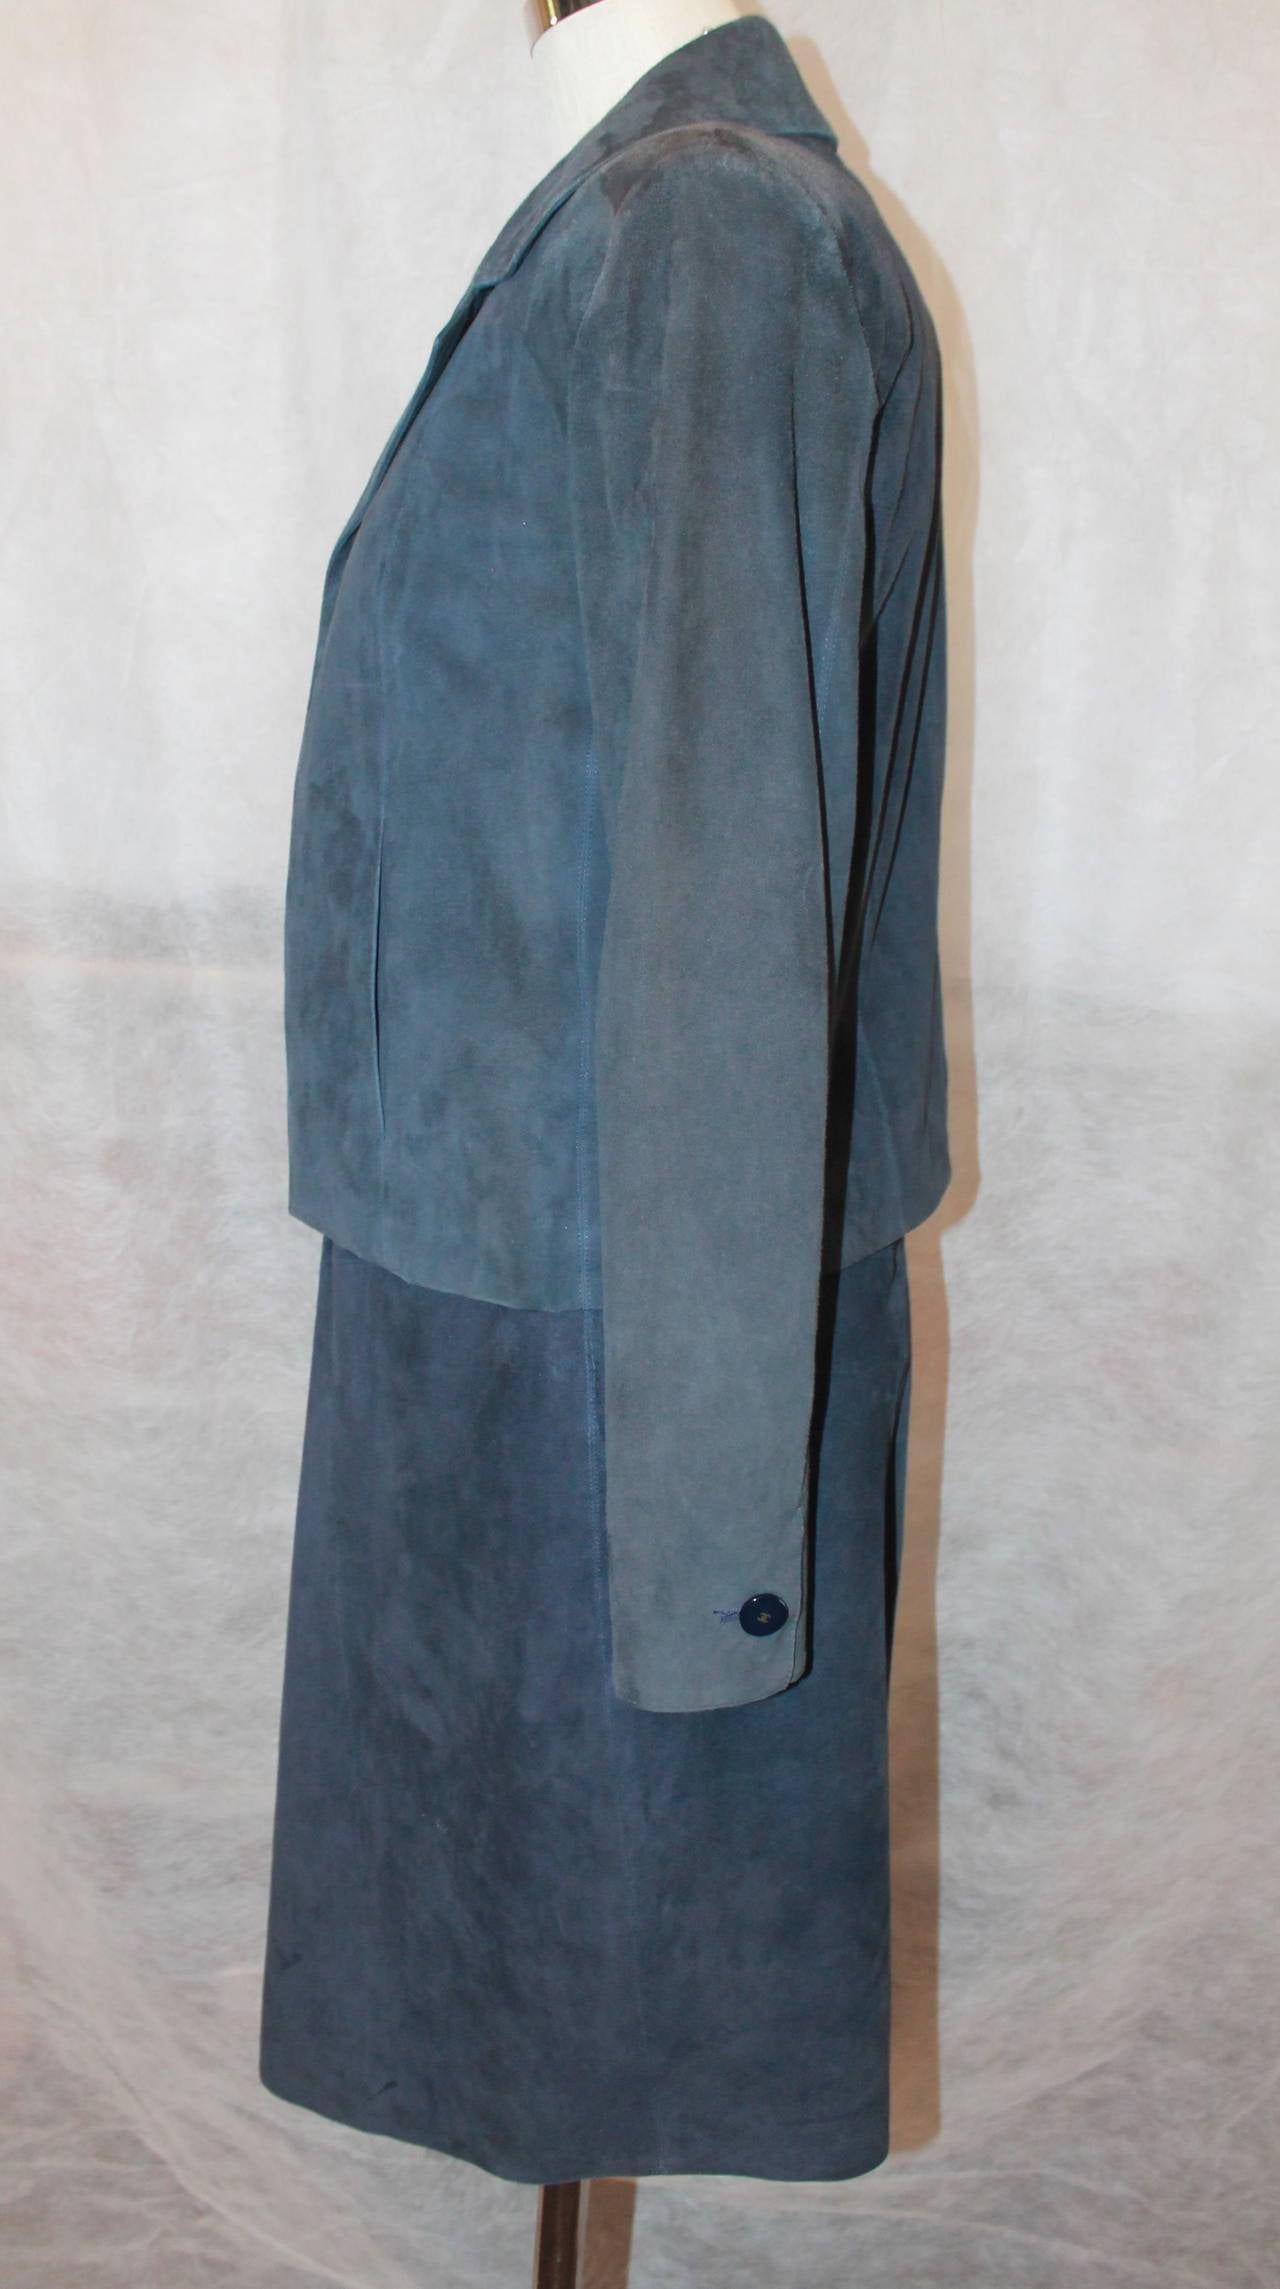 Blue 2002 Chanel Navy Suede Two Piece Dress and Jacket - 38 For Sale